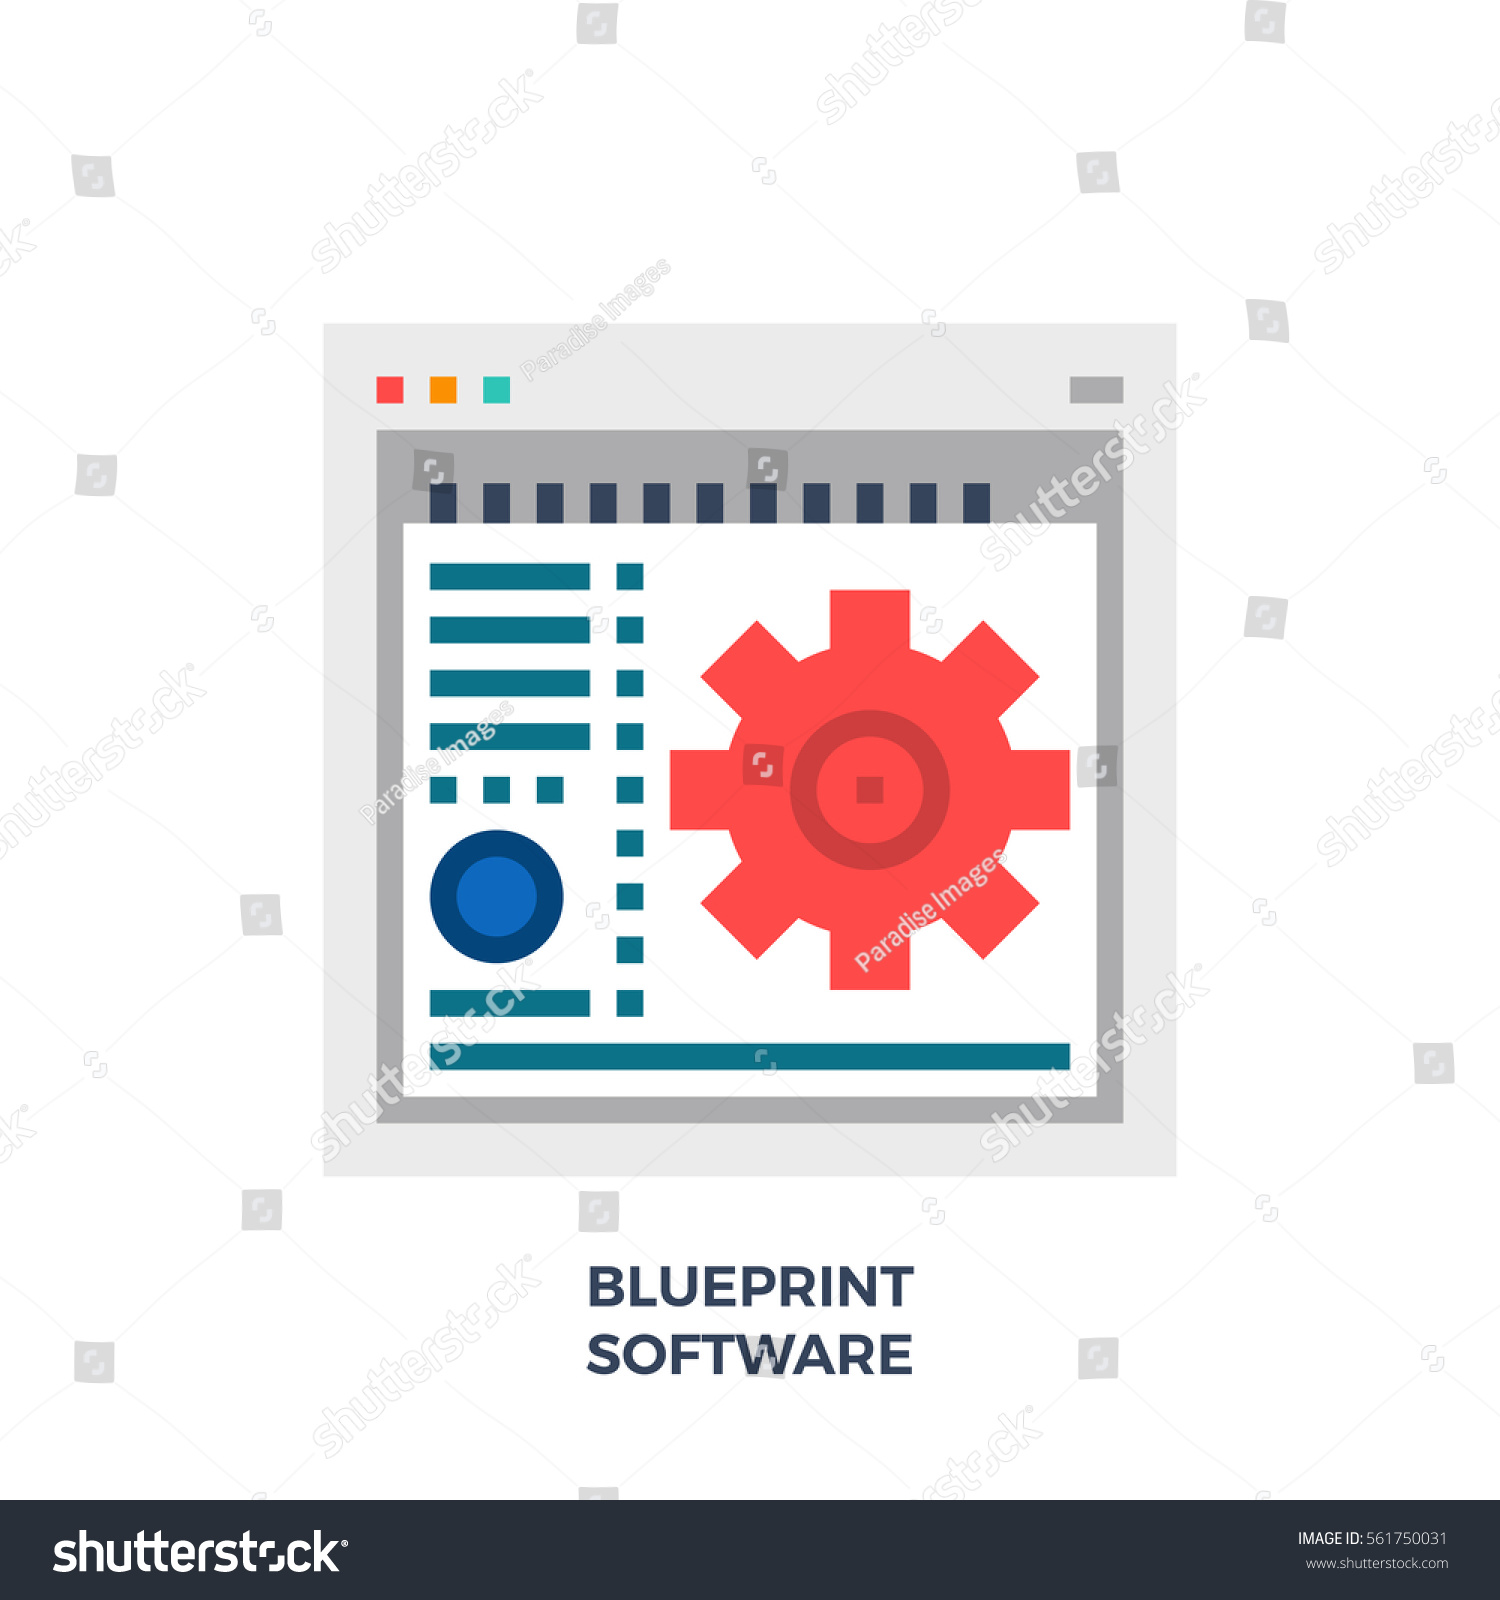 Software blueprint new style flat icon stock vector 561750031 software blueprint new style flat icon stock vector 561750031 shutterstock malvernweather Image collections